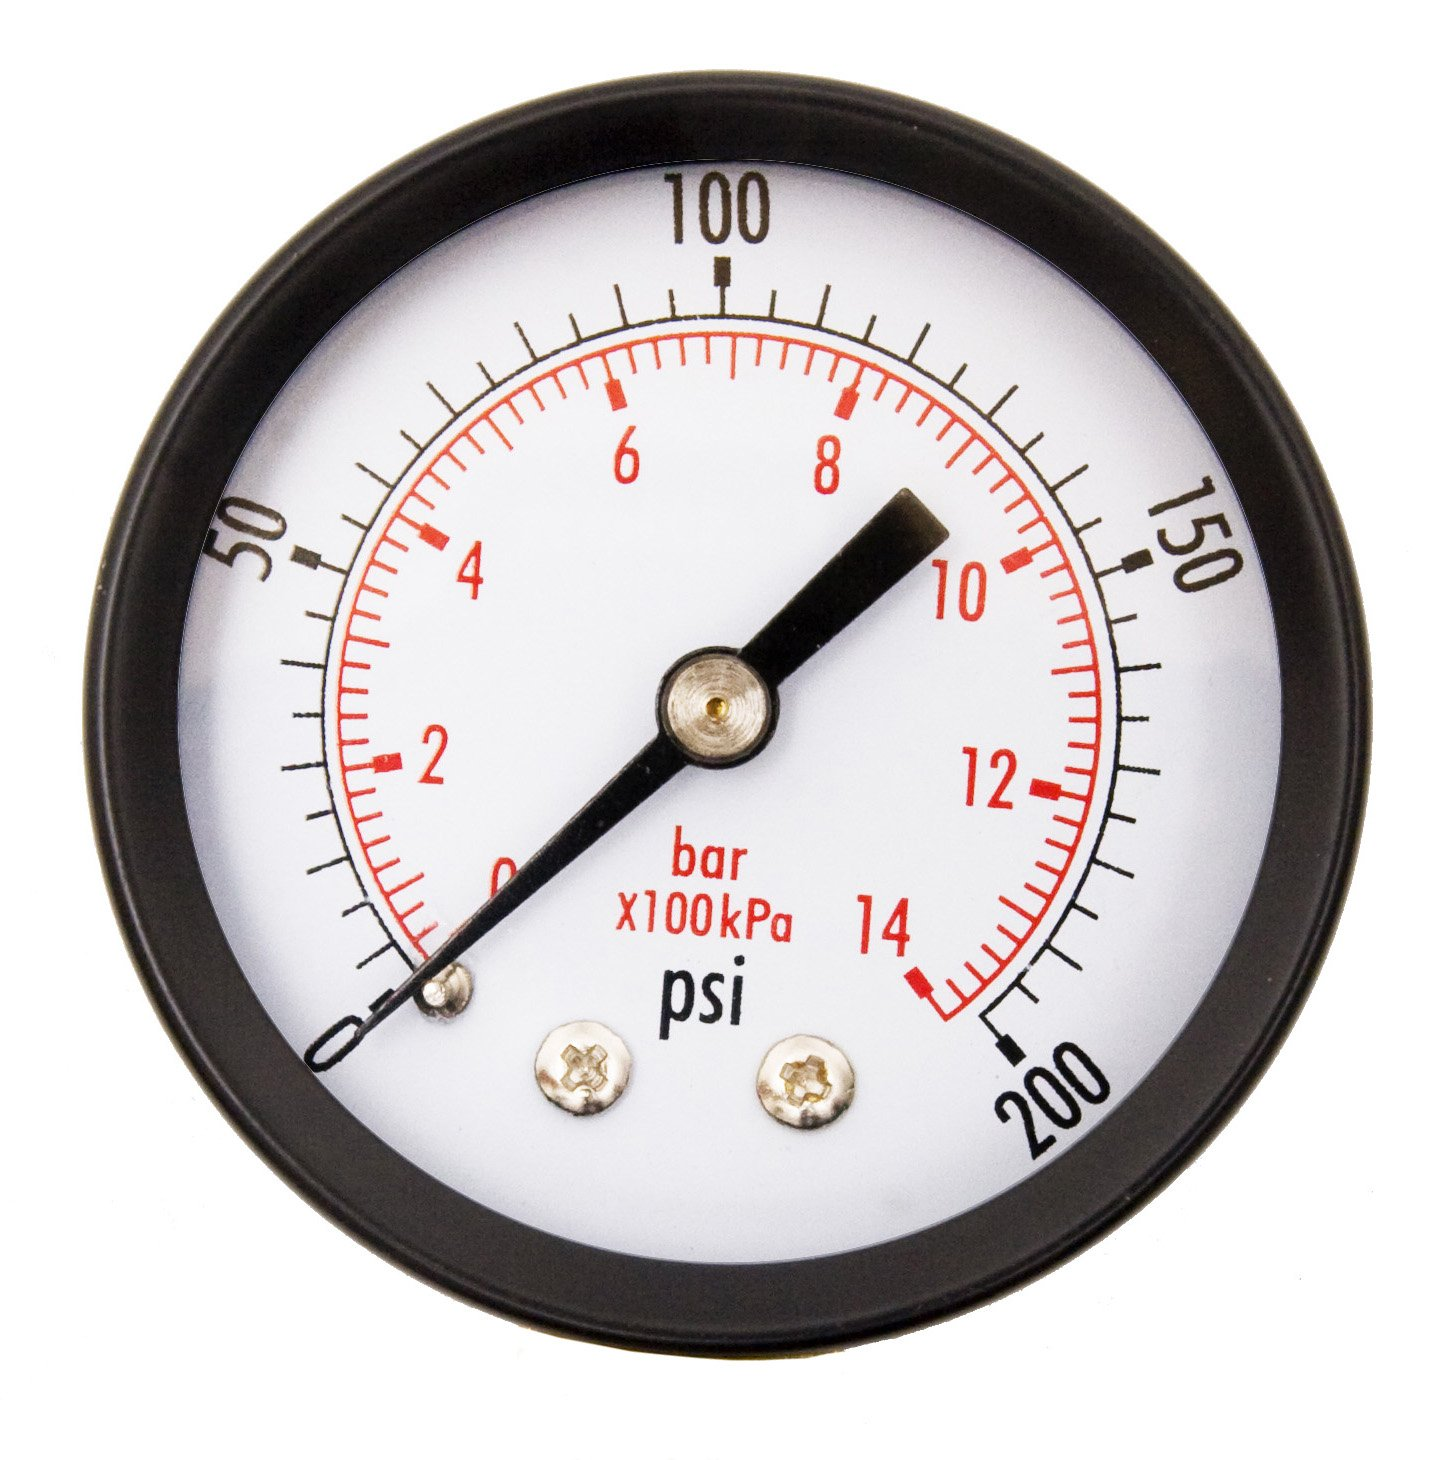 DuraChoice 2 Dial Utility Pressure Gauge for Air Compressor Water Oil Gas 1 4 NPT Center Back Mount Black Steel Case 0 200 PSI